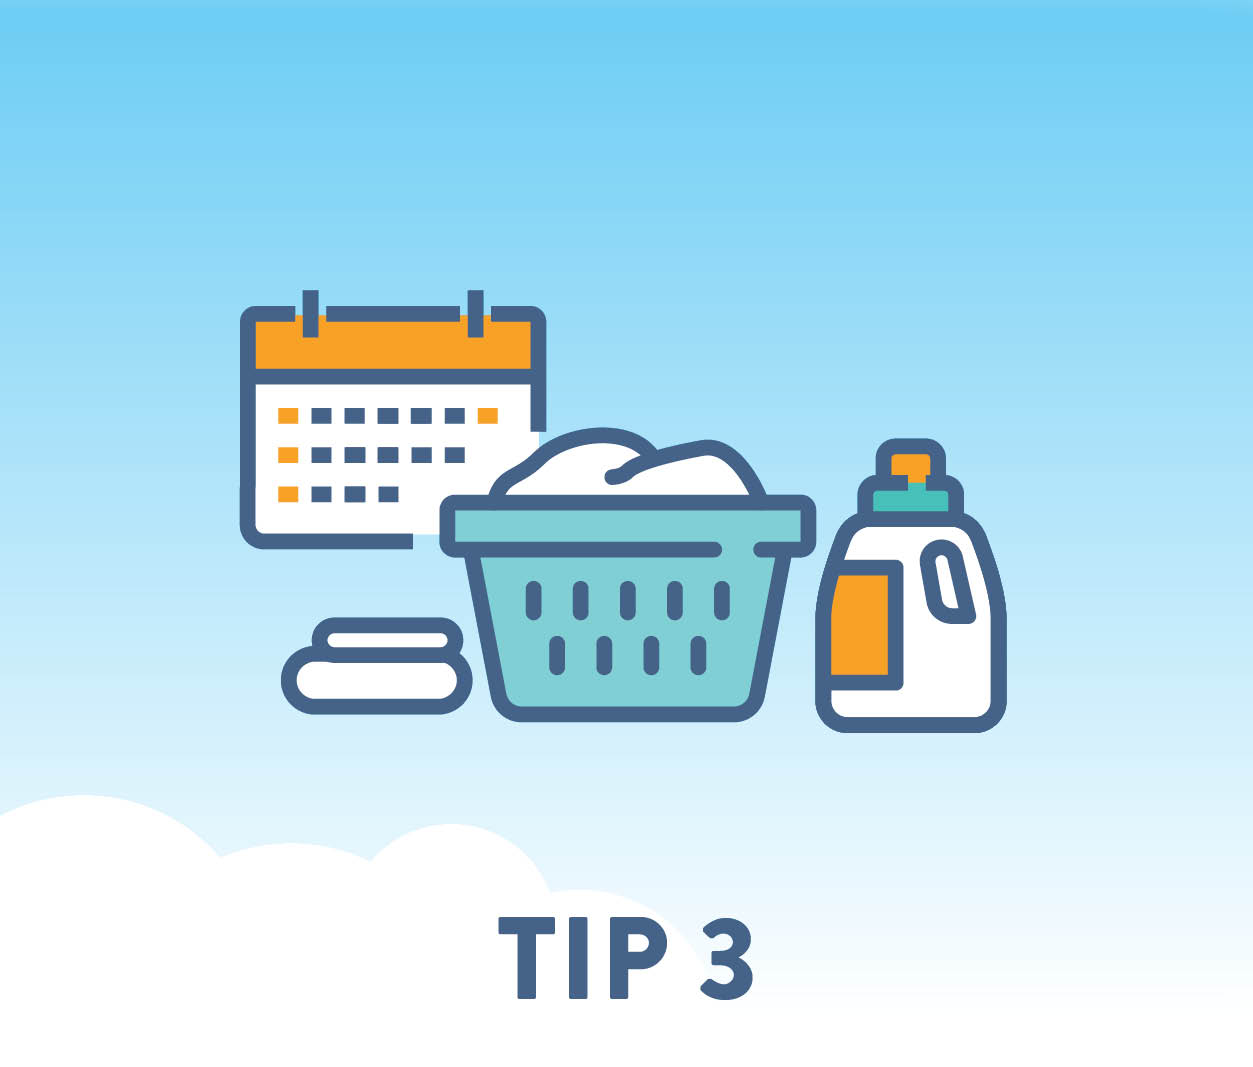 Do laundry and other chores that require significant amounts of electricity mid-day, later in the evening, or on weekends (outside of peak hours).